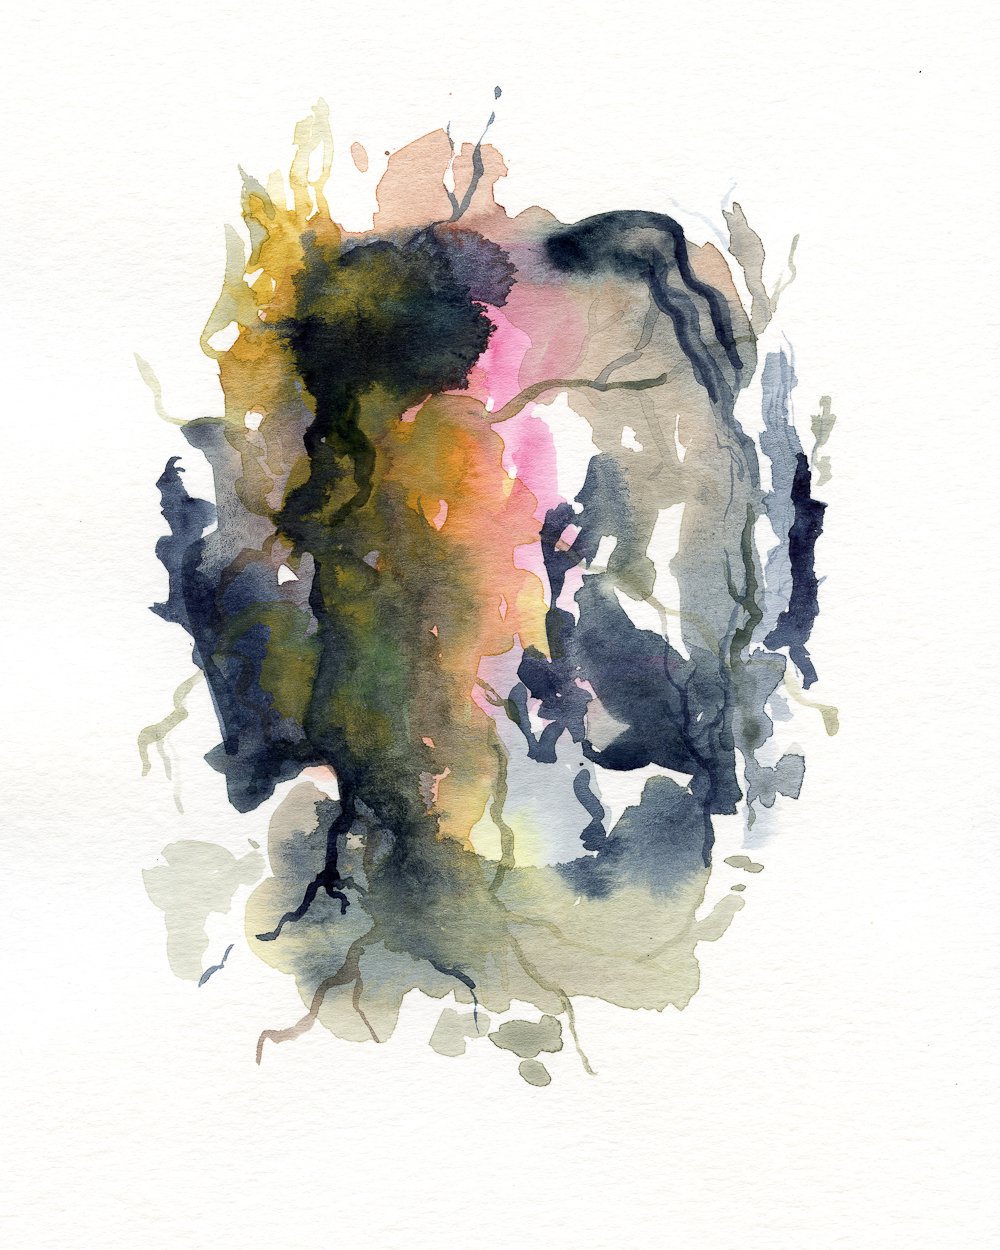 watercolor032.jpg